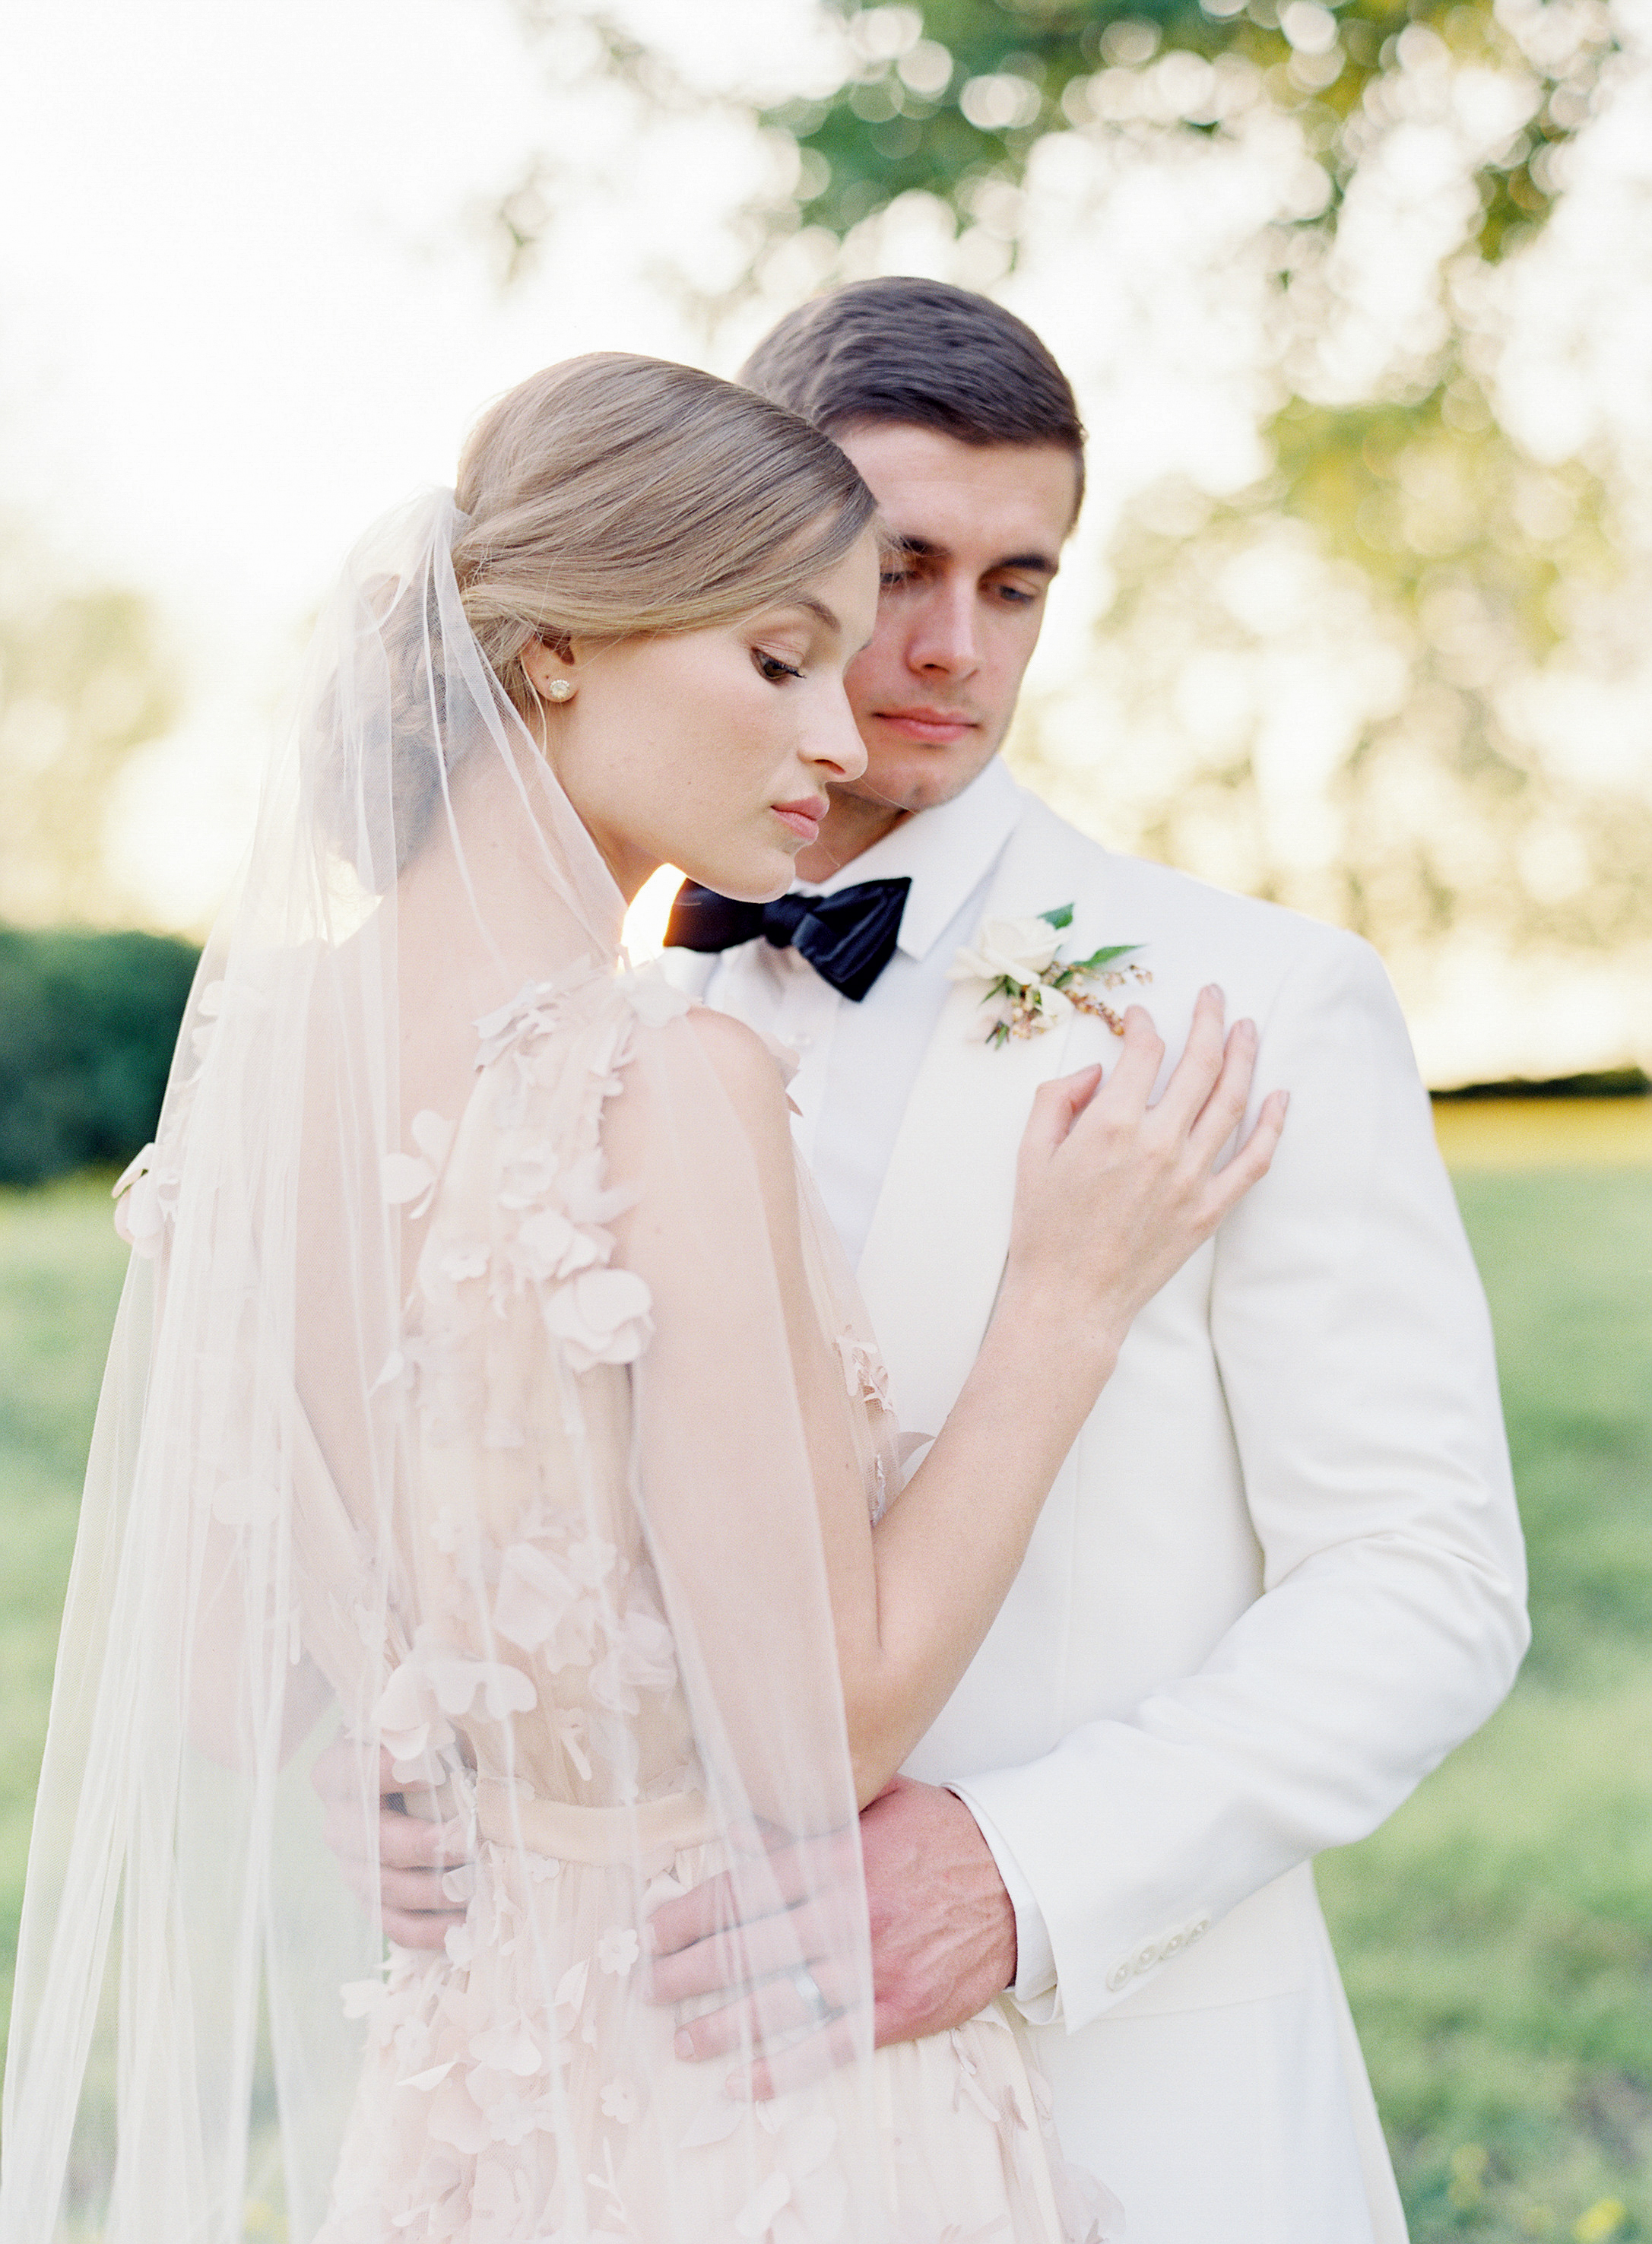 Virginia blush spring wedding at North Point Plantation with Rachel May Photography and East Made Event Company featured on OnceWed-0433.jpg